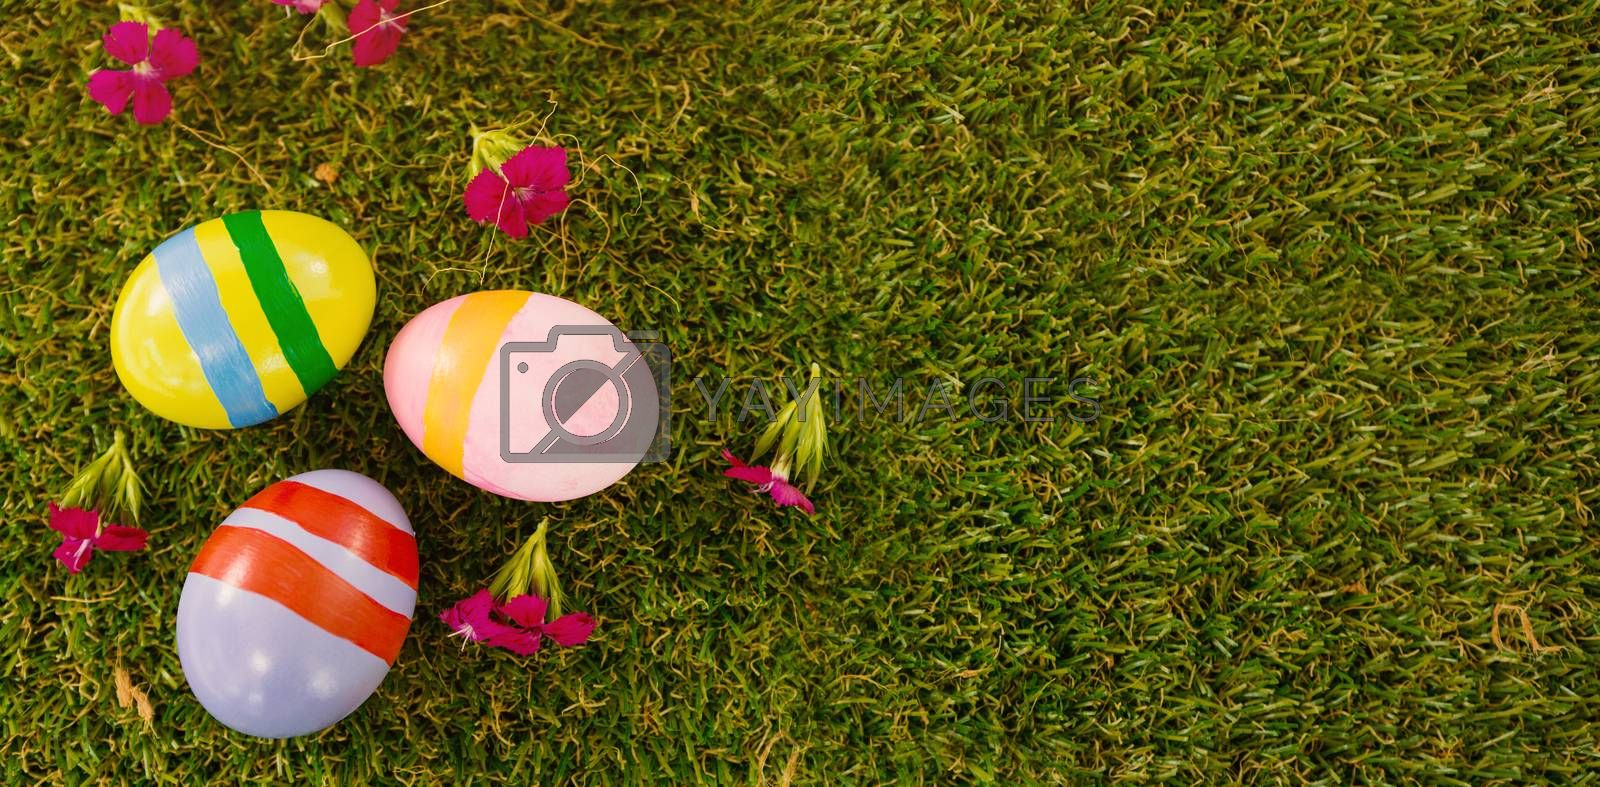 Overhead view of painted Easter egg on green grass